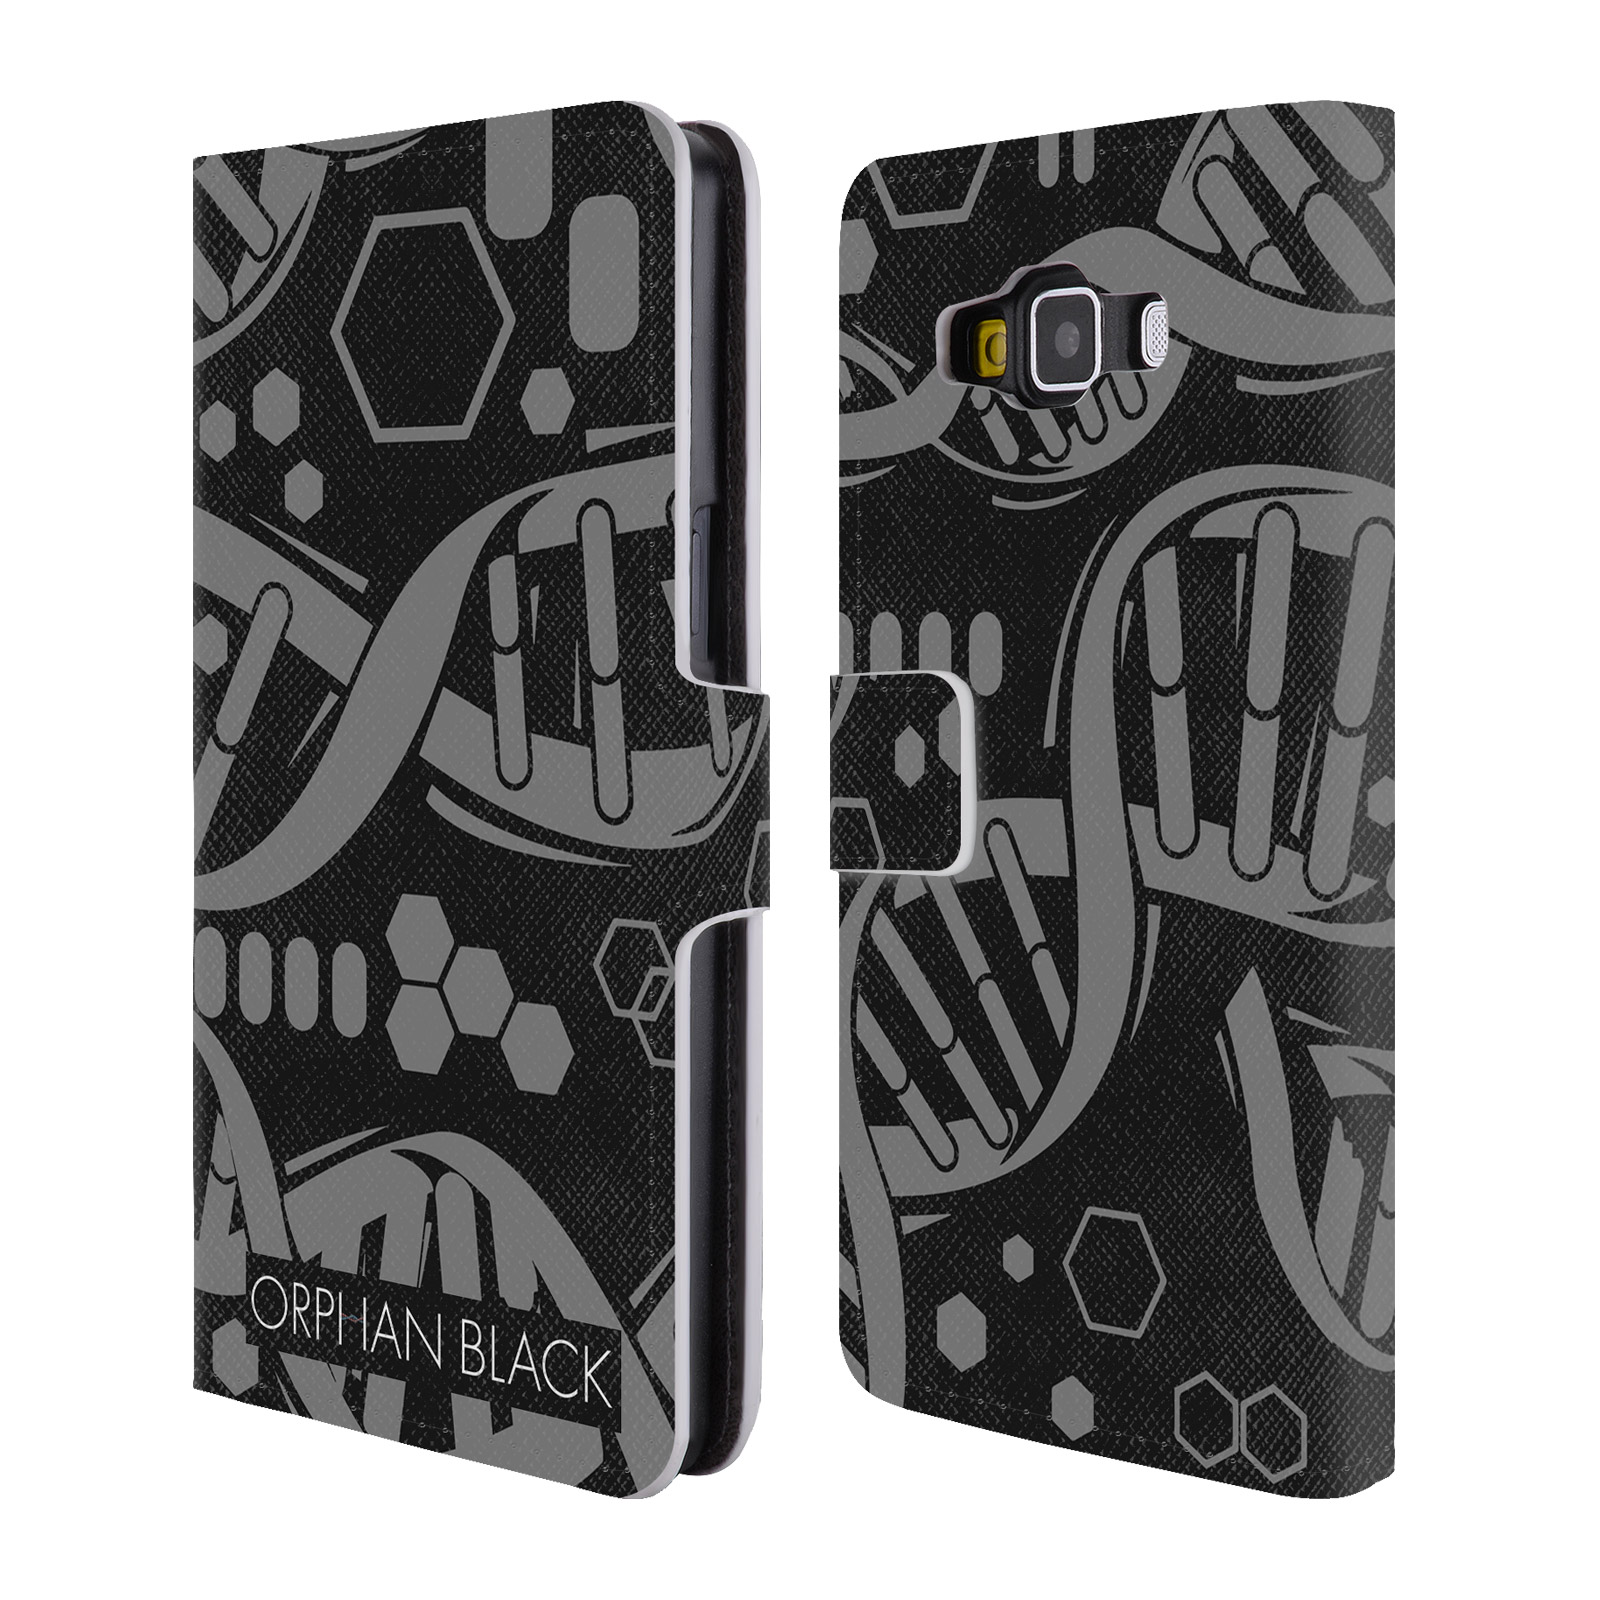 OFFICIAL ORPHAN BLACK LOGO & HELIX LEATHER BOOK WALLET CASE COVER FOR SAMSUNG PHONES 2